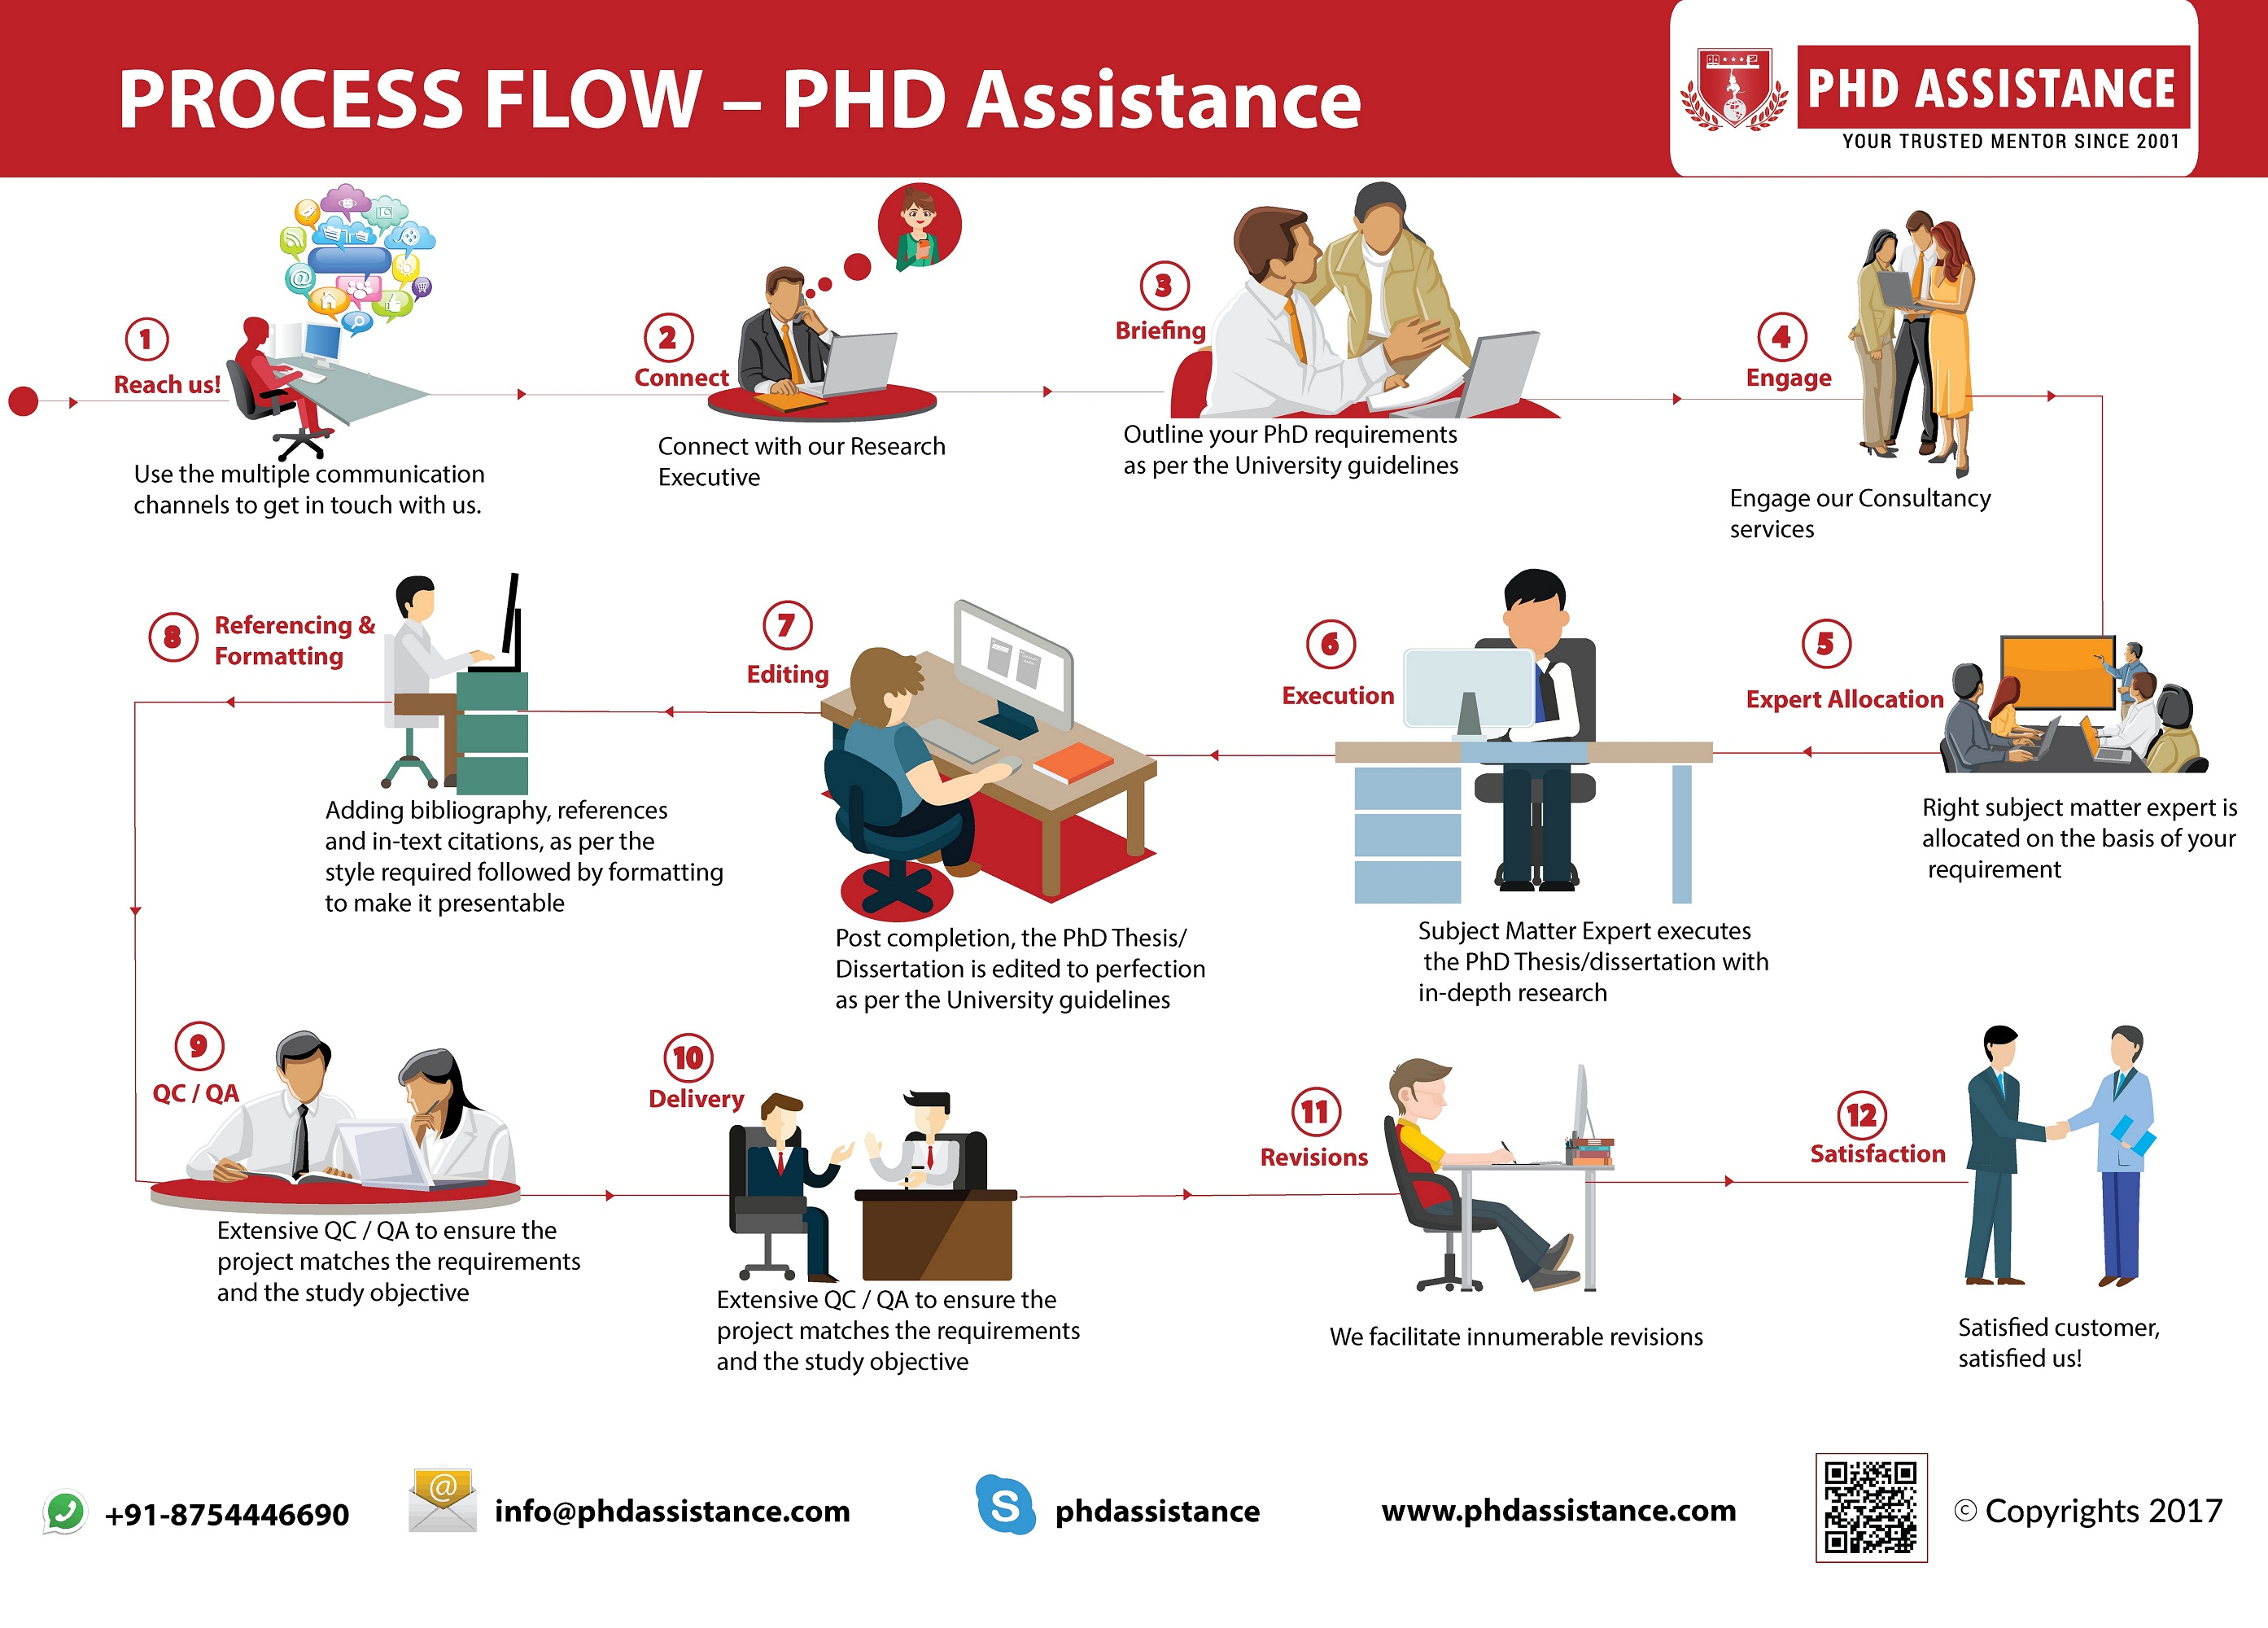 5 Tips To Enhance Your PhD Thesis